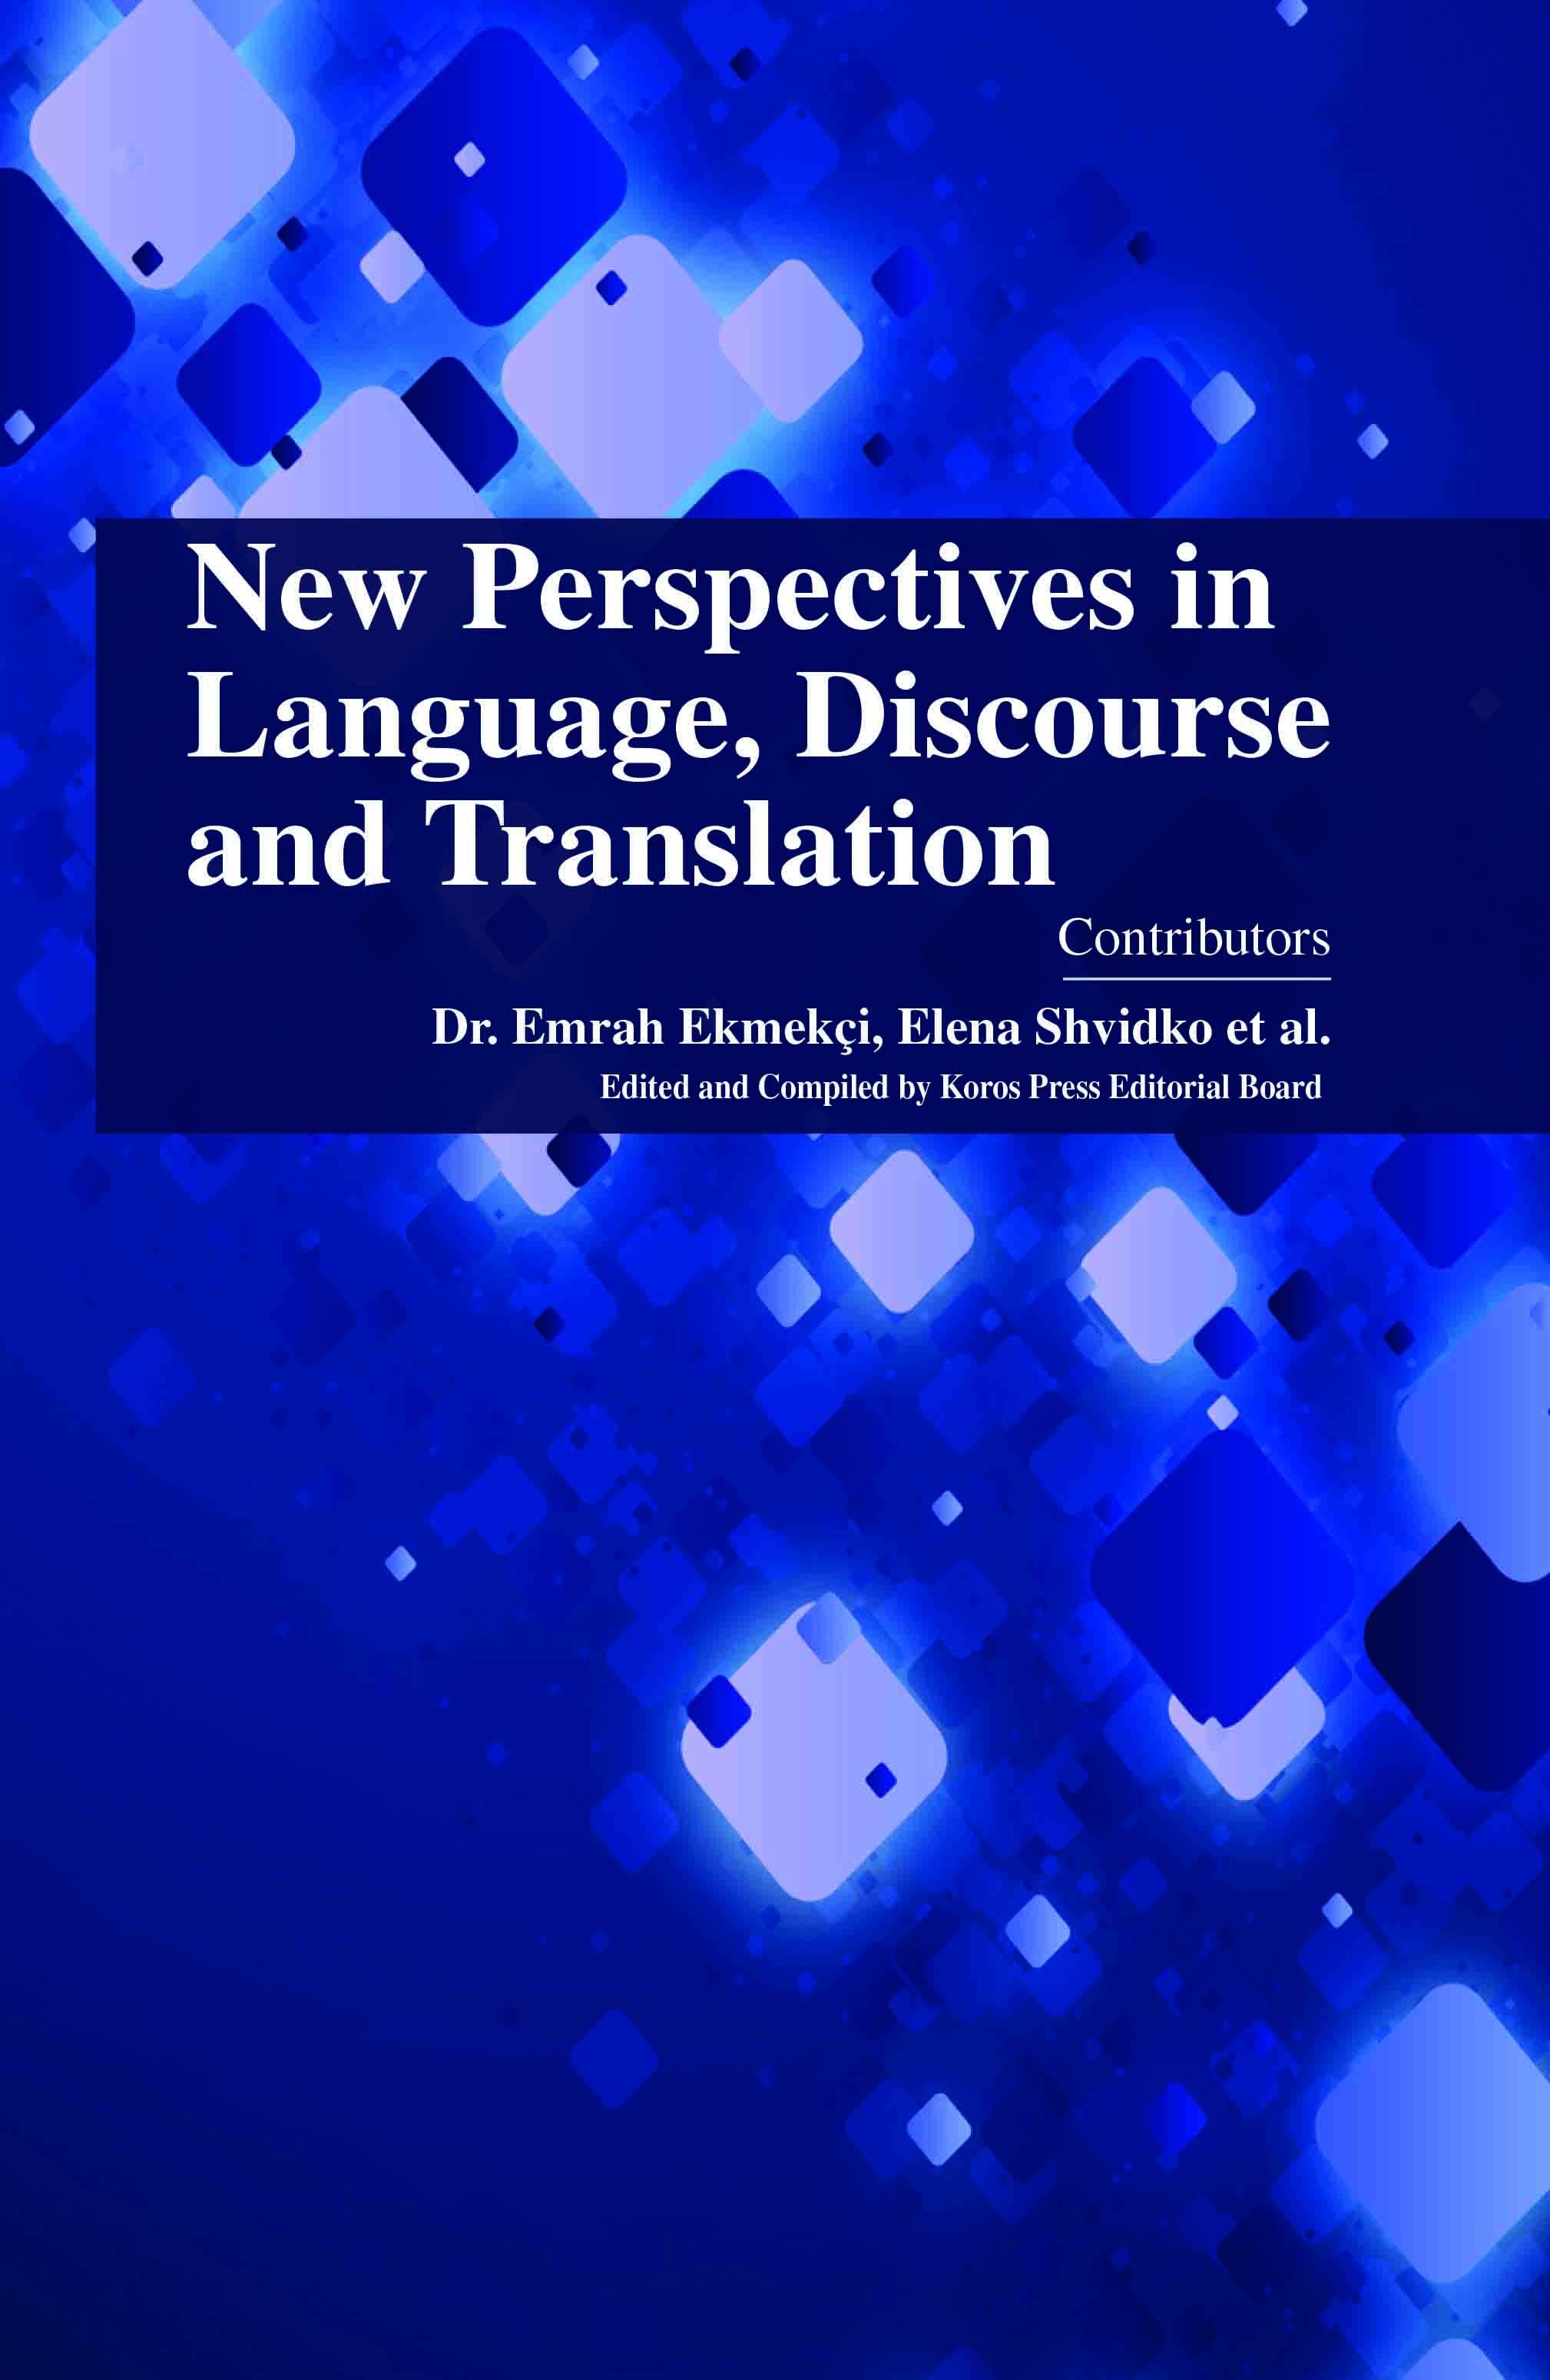 New Perspectives in Language, Discourse and Translation - 9781785690235